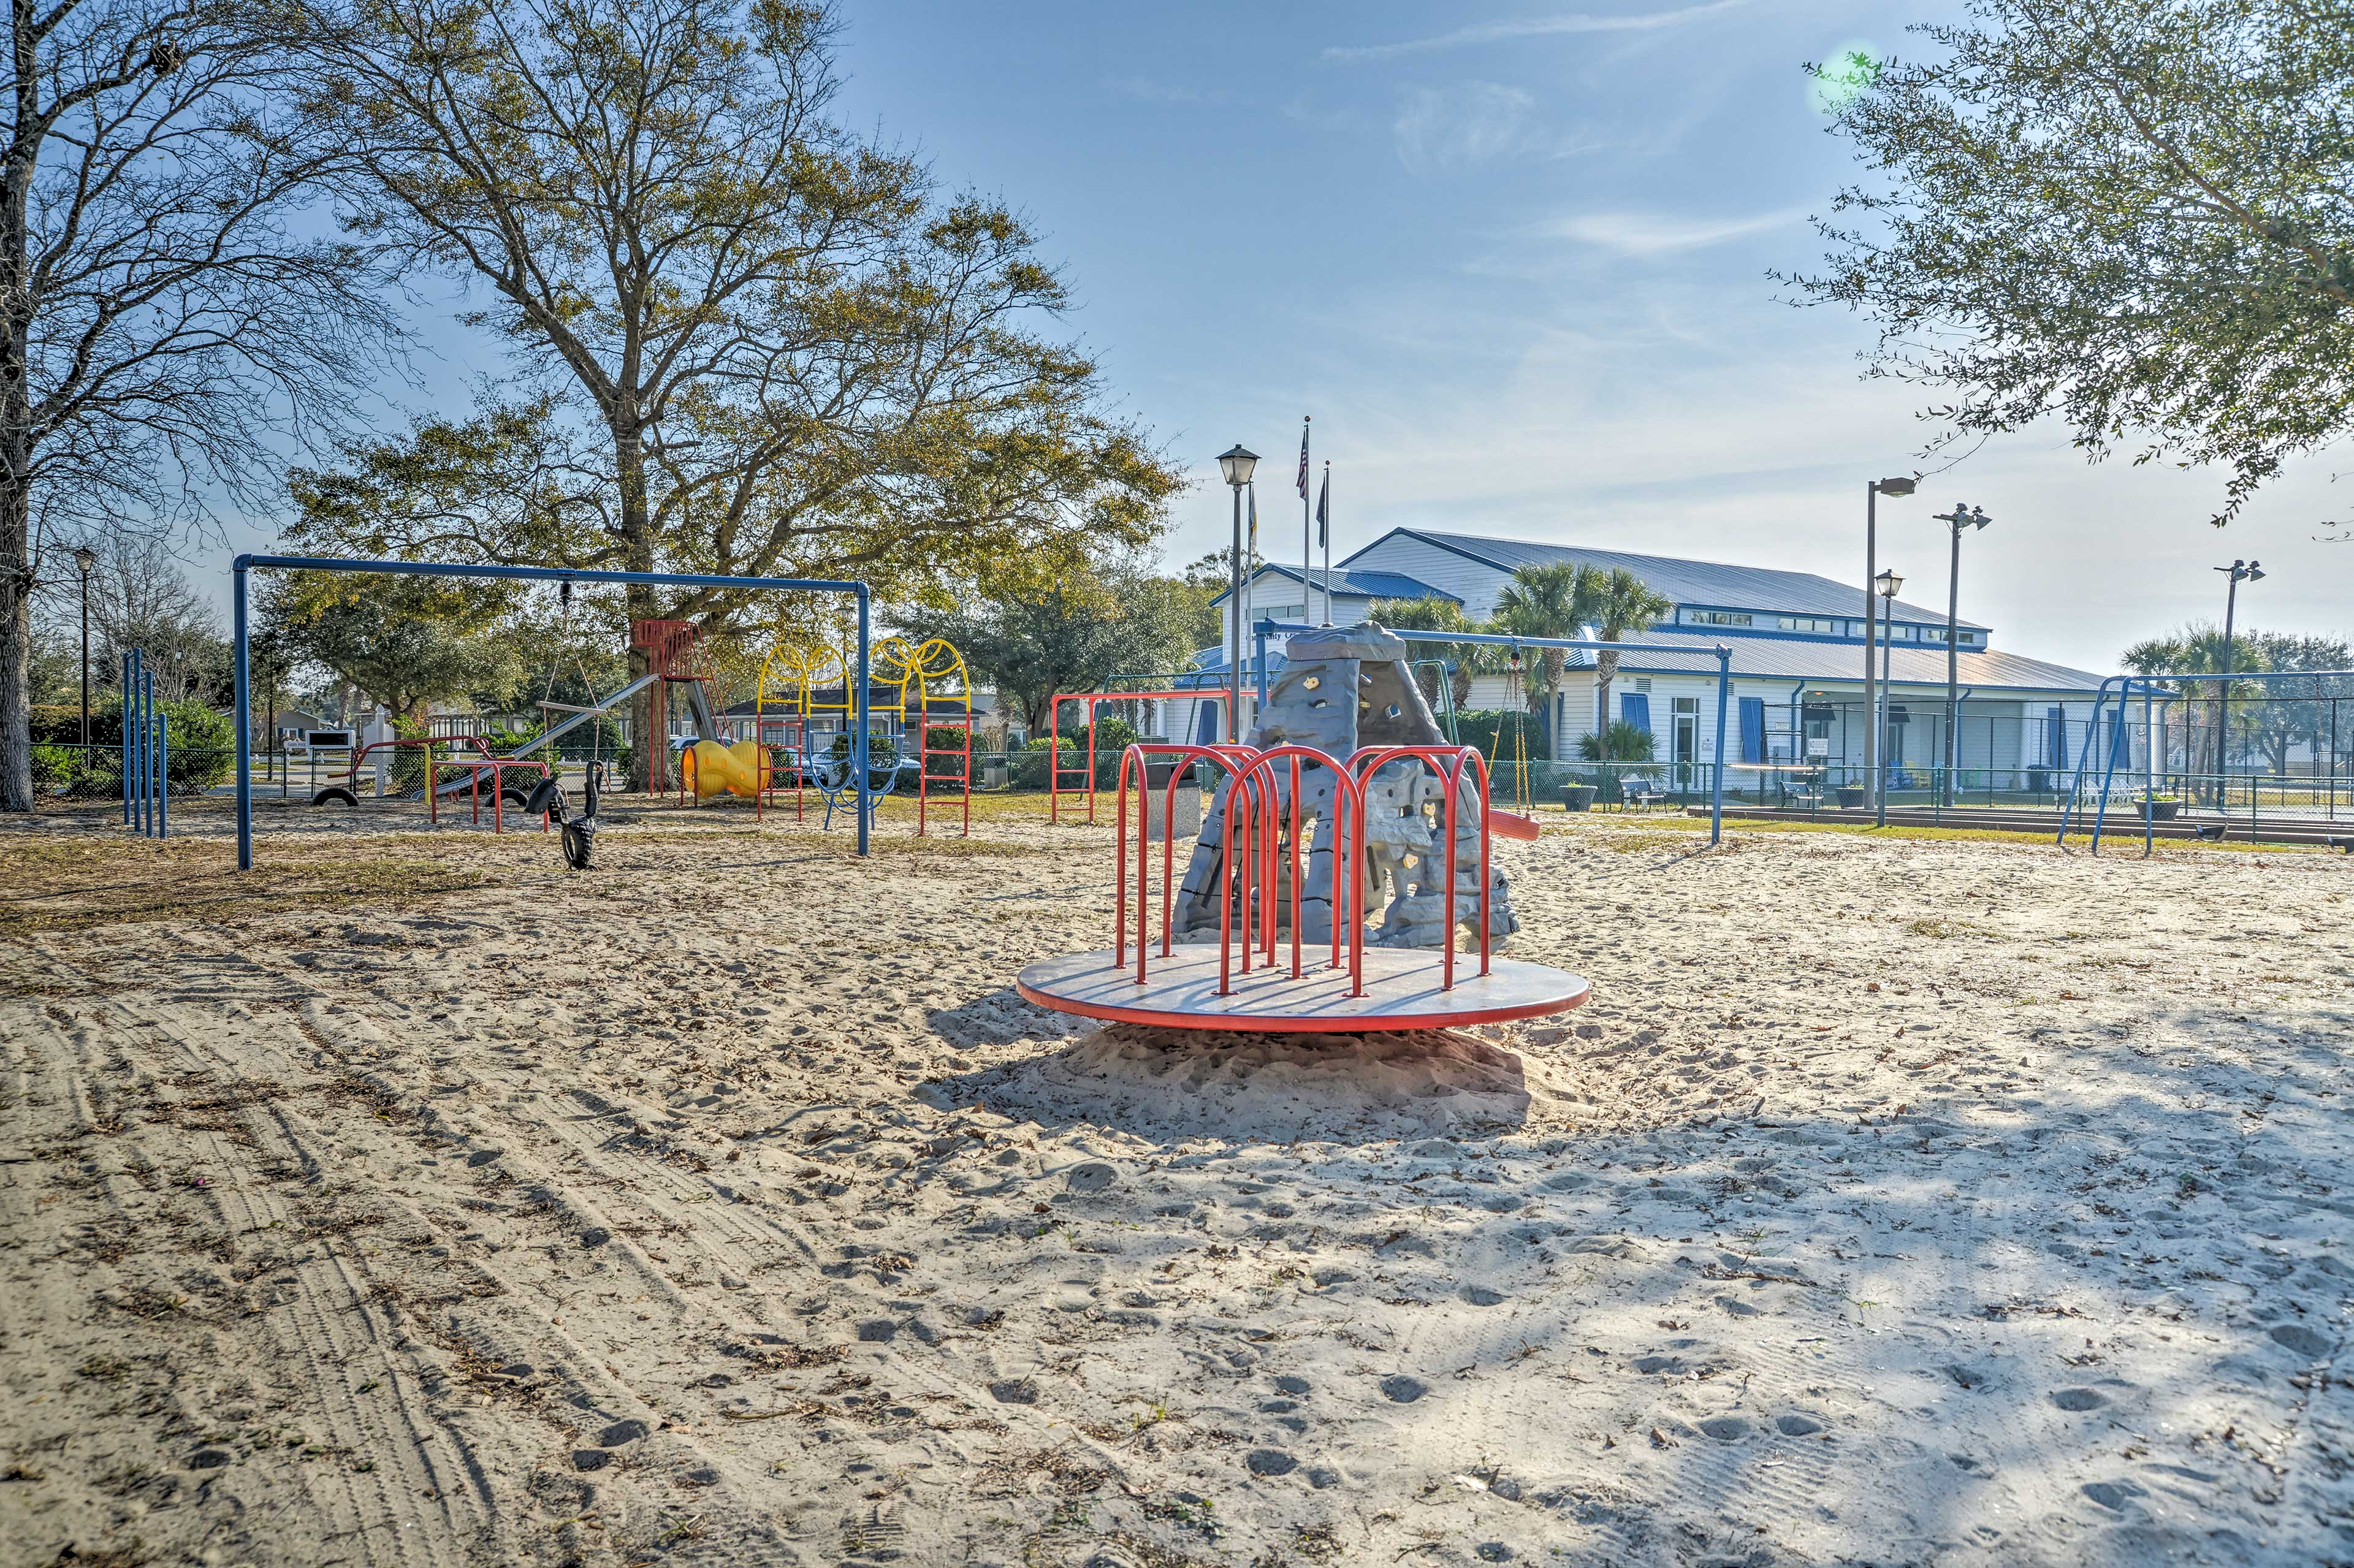 Kids can play on the jungle gym near the main park with a baseball field.